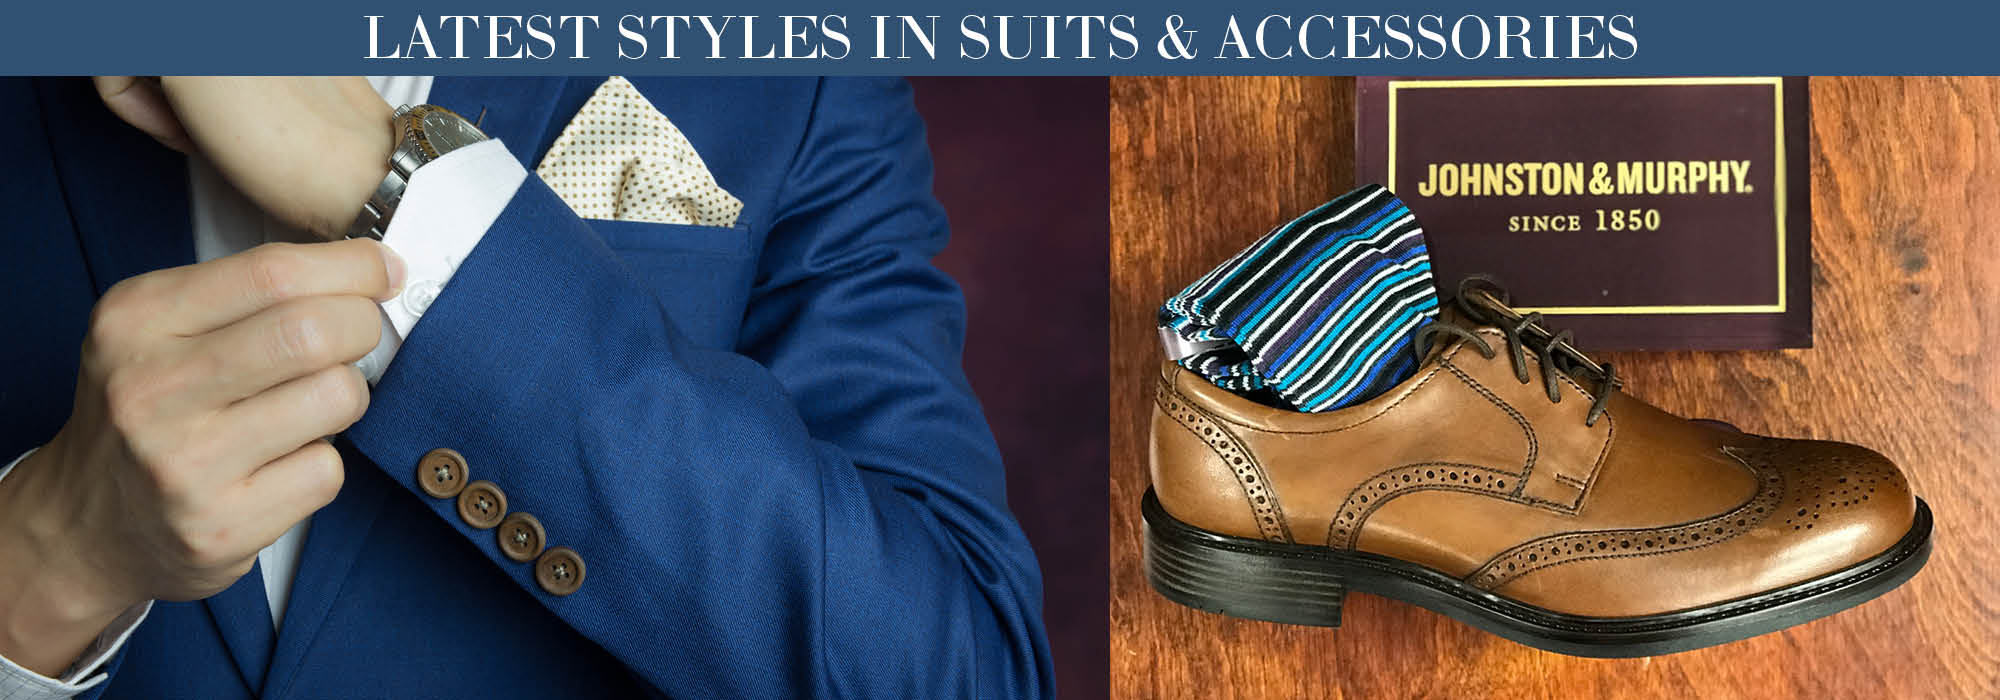 Latest Styles in Suits and Accessories